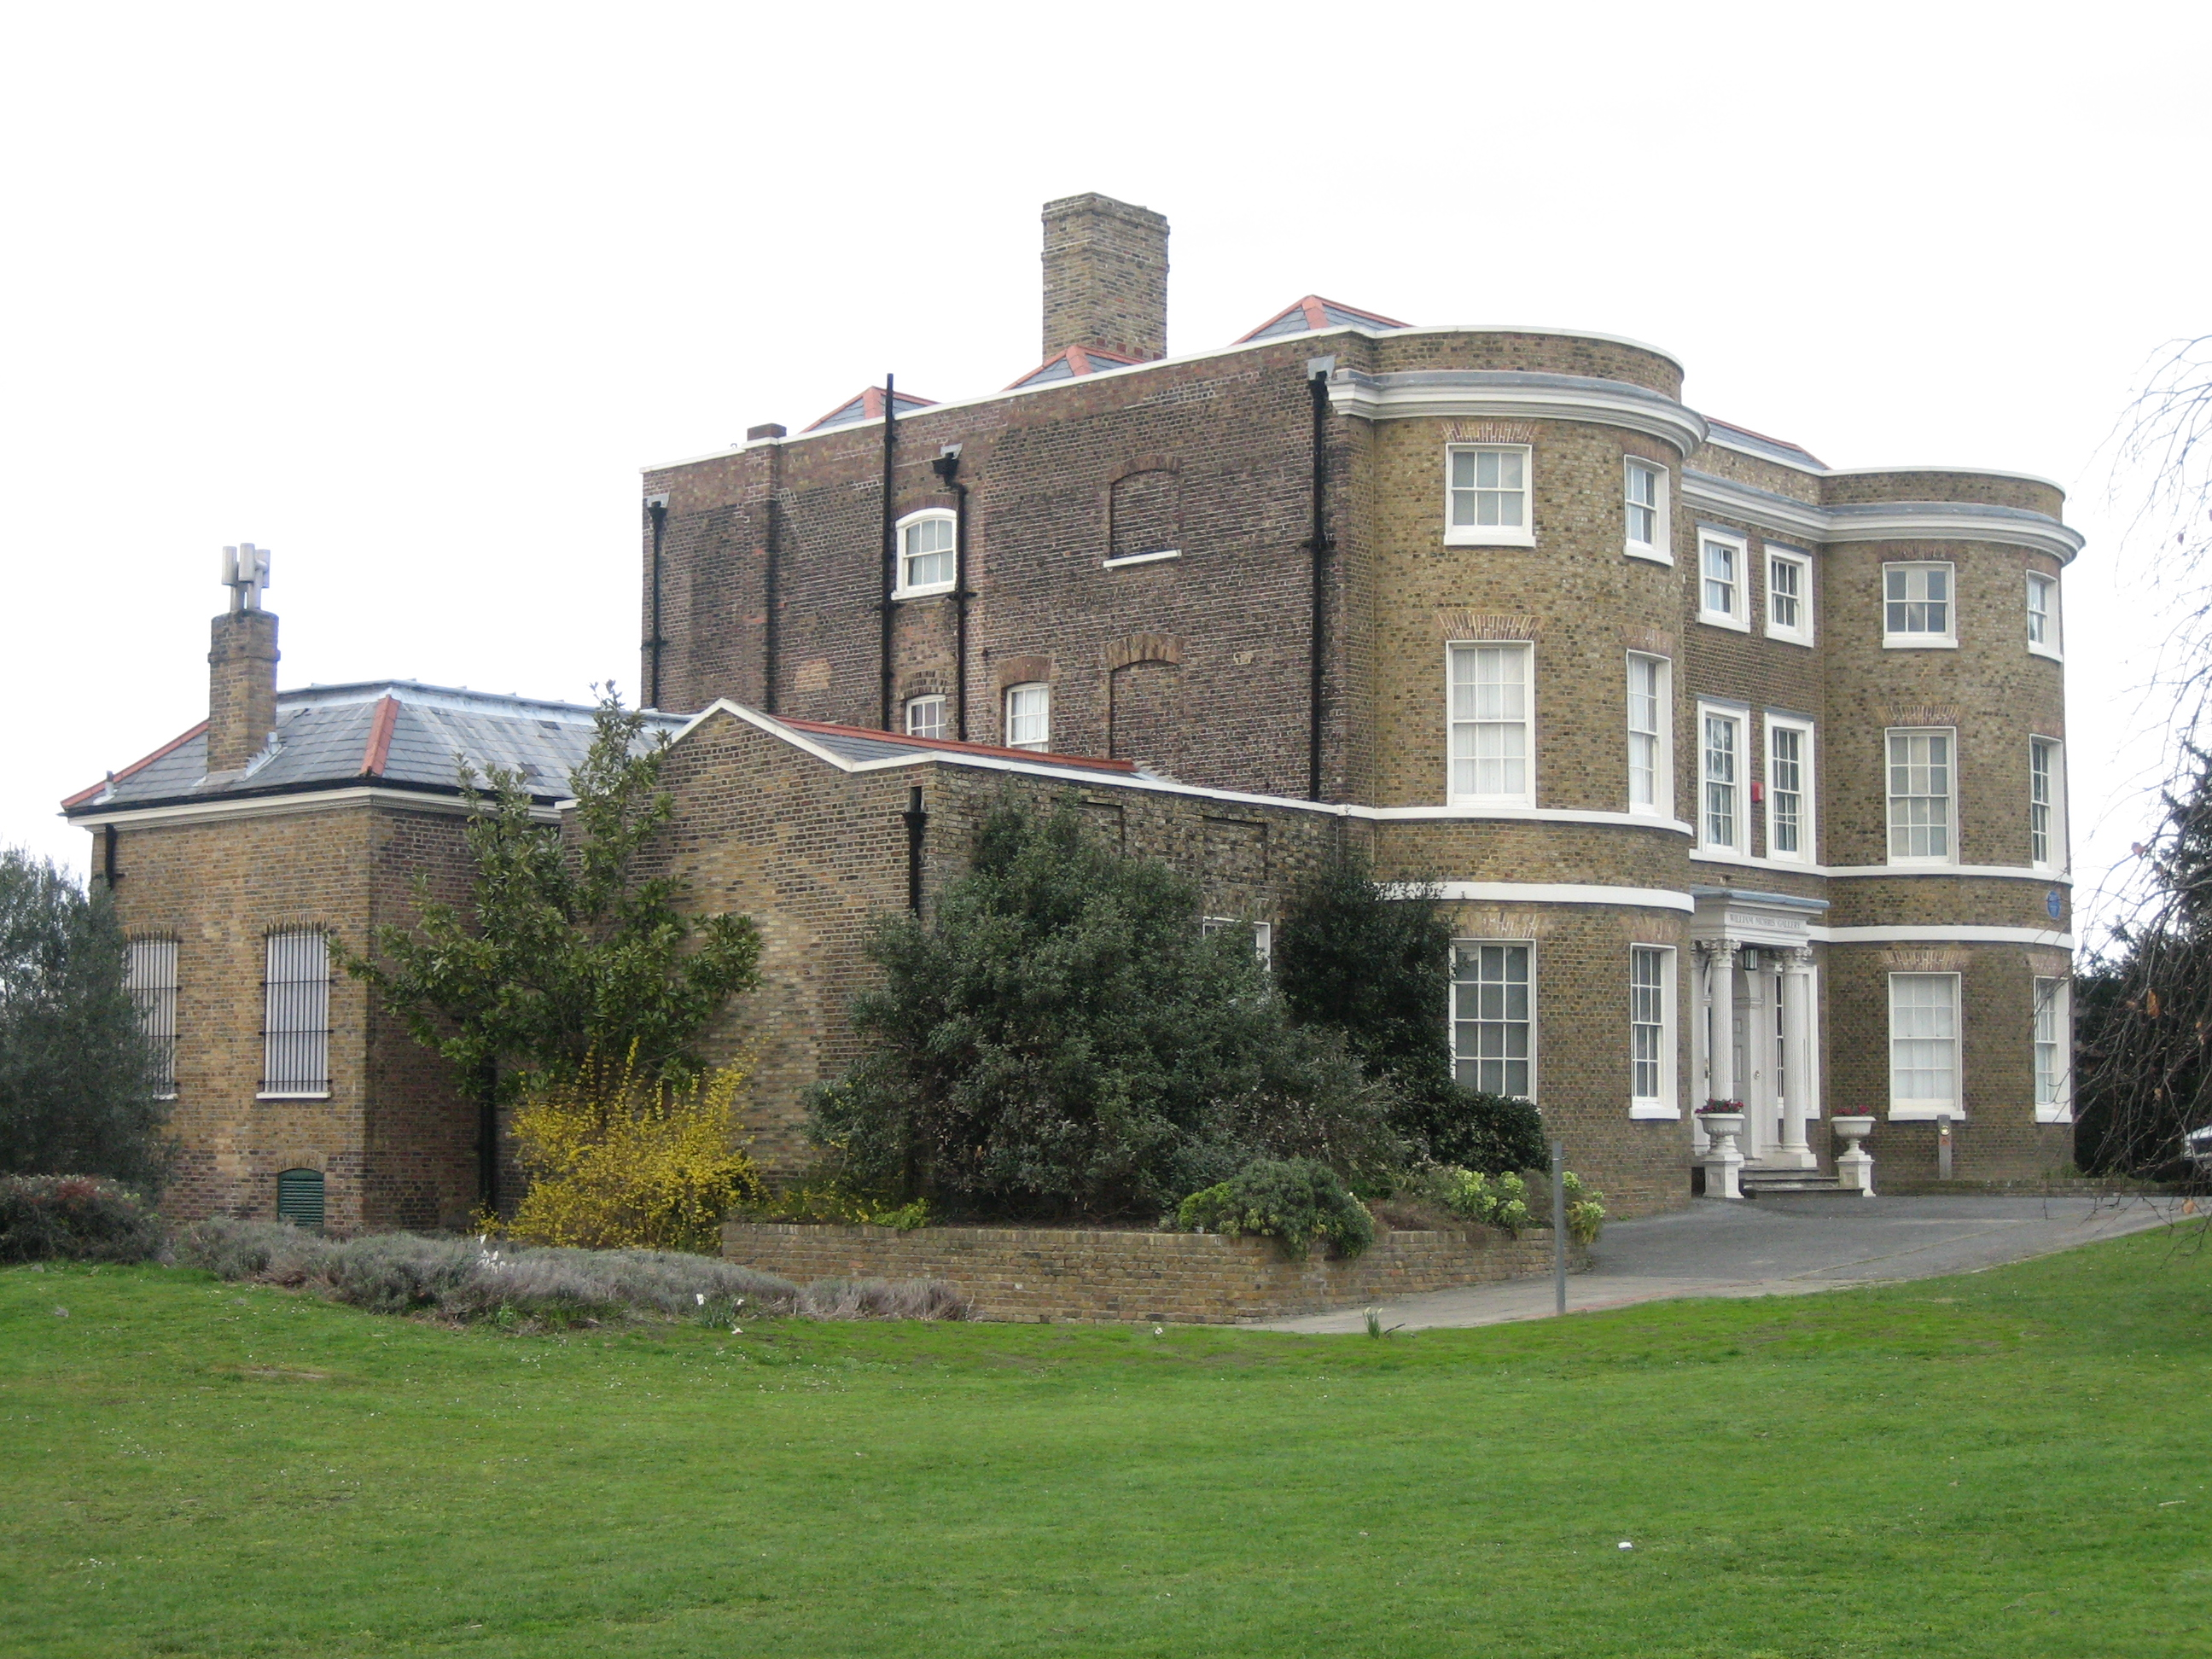 The William Morris Gallery, Lloyd Park, Forest Road.